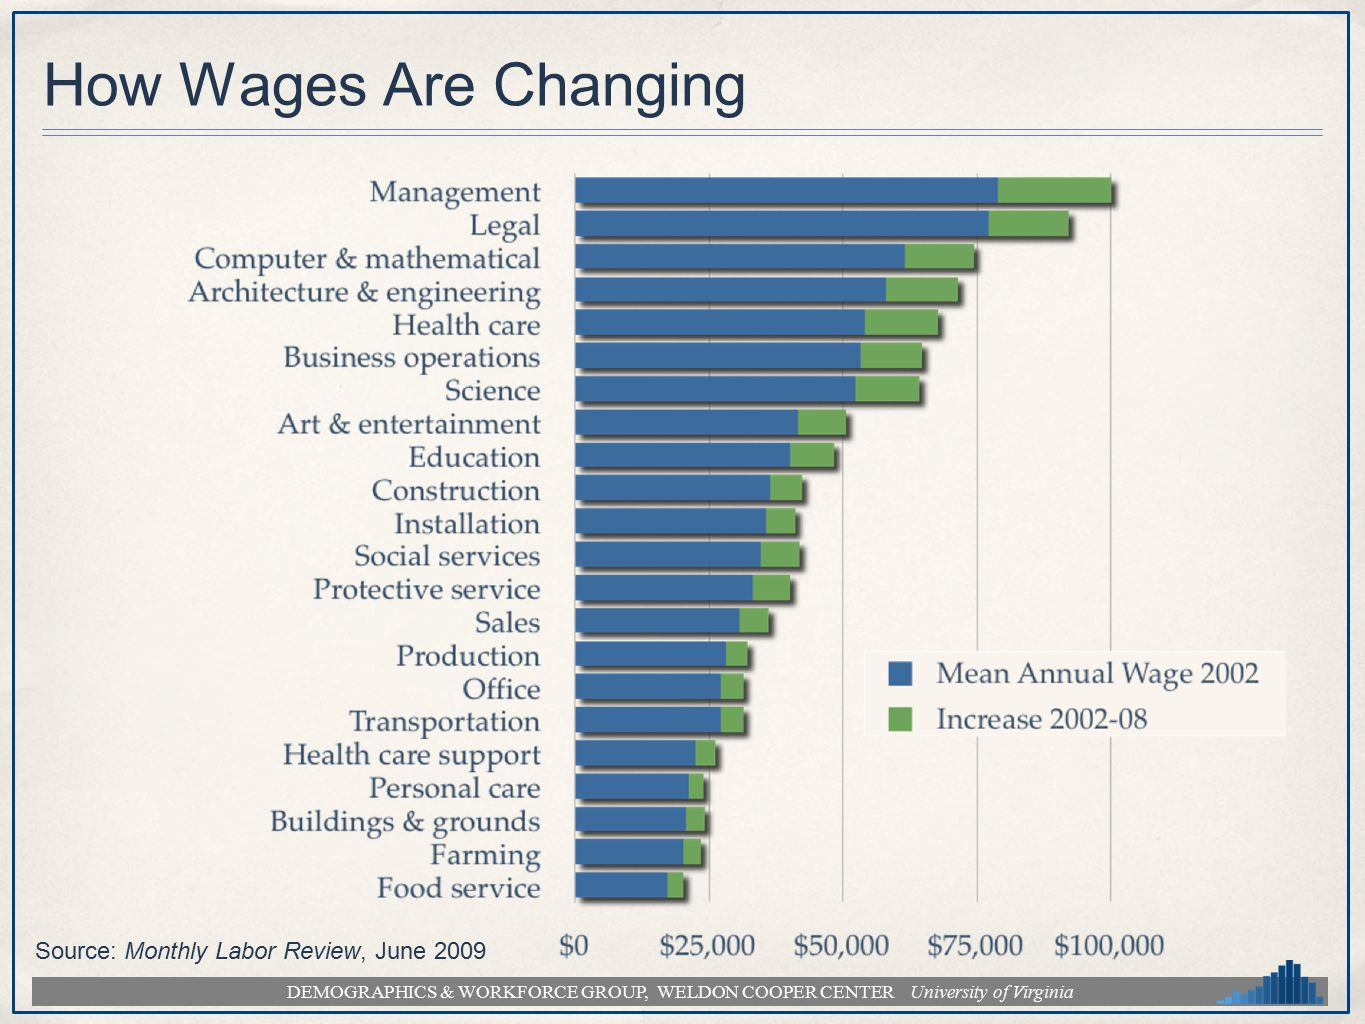 DEMOGRAPHICS & WORKFORCE GROUP, WELDON COOPER CENTER University of Virginia How Wages Are Changing Source: Monthly Labor Review, June 2009